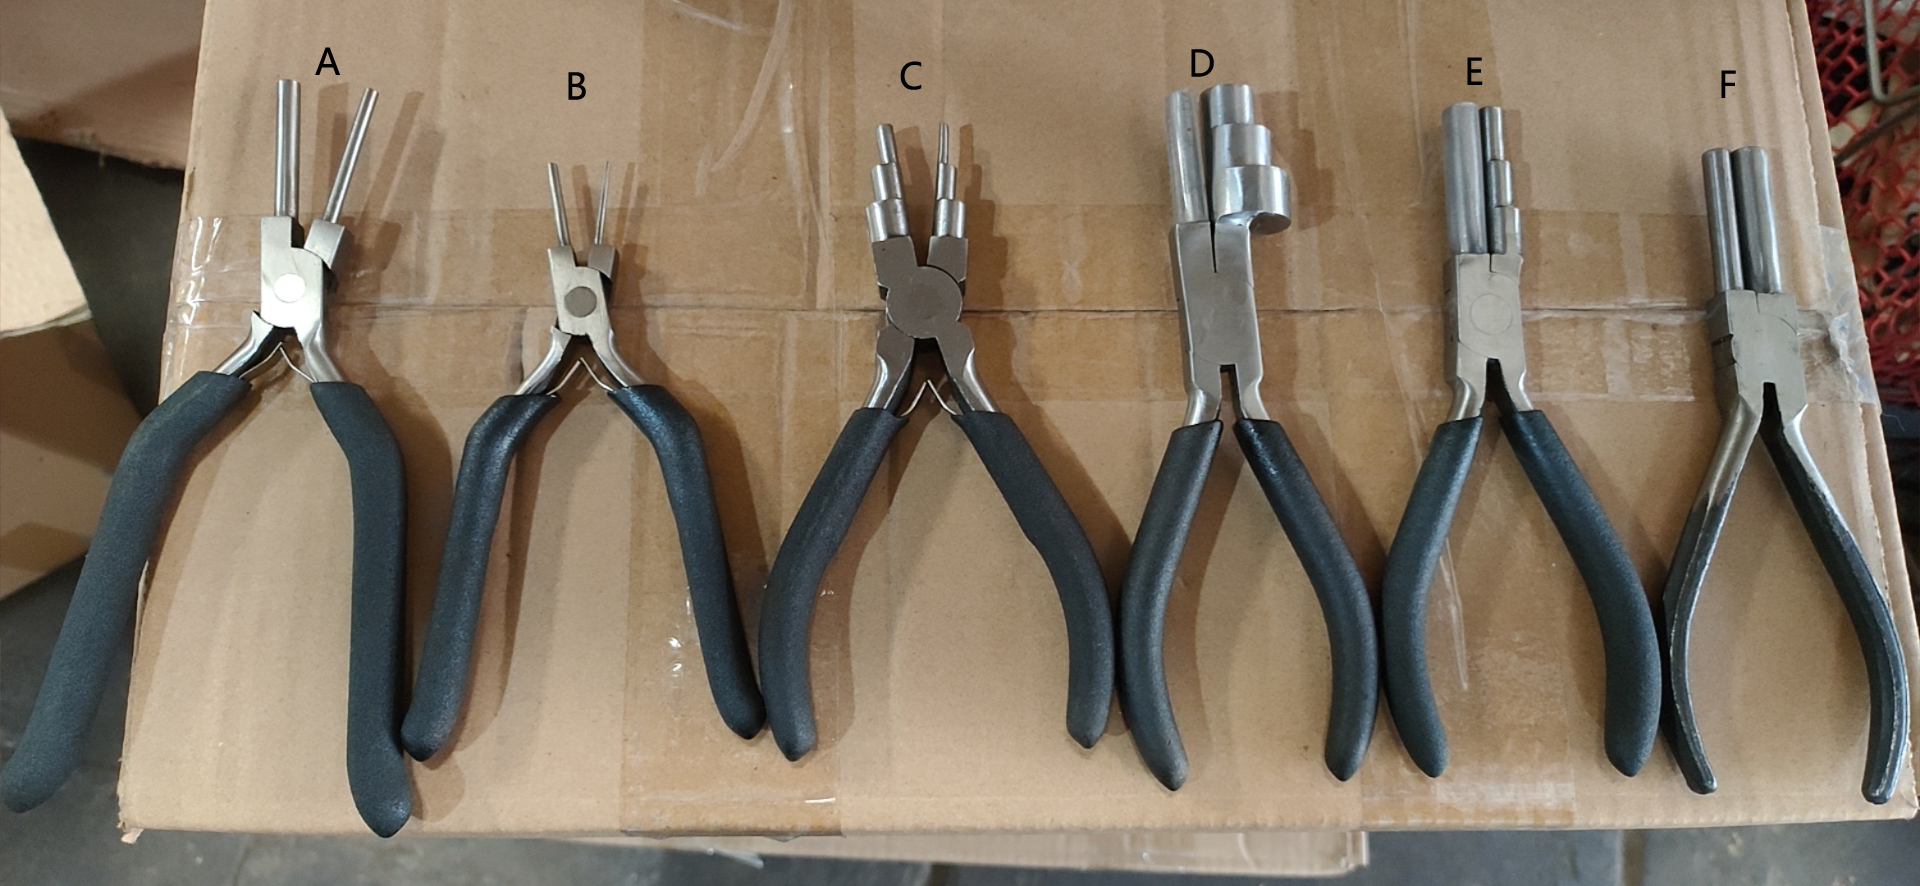 Jewelry Making Plier Hand Tool Stainless Steel Needle Nose Pliers DIY Repairing Jewelry Pliers Sets